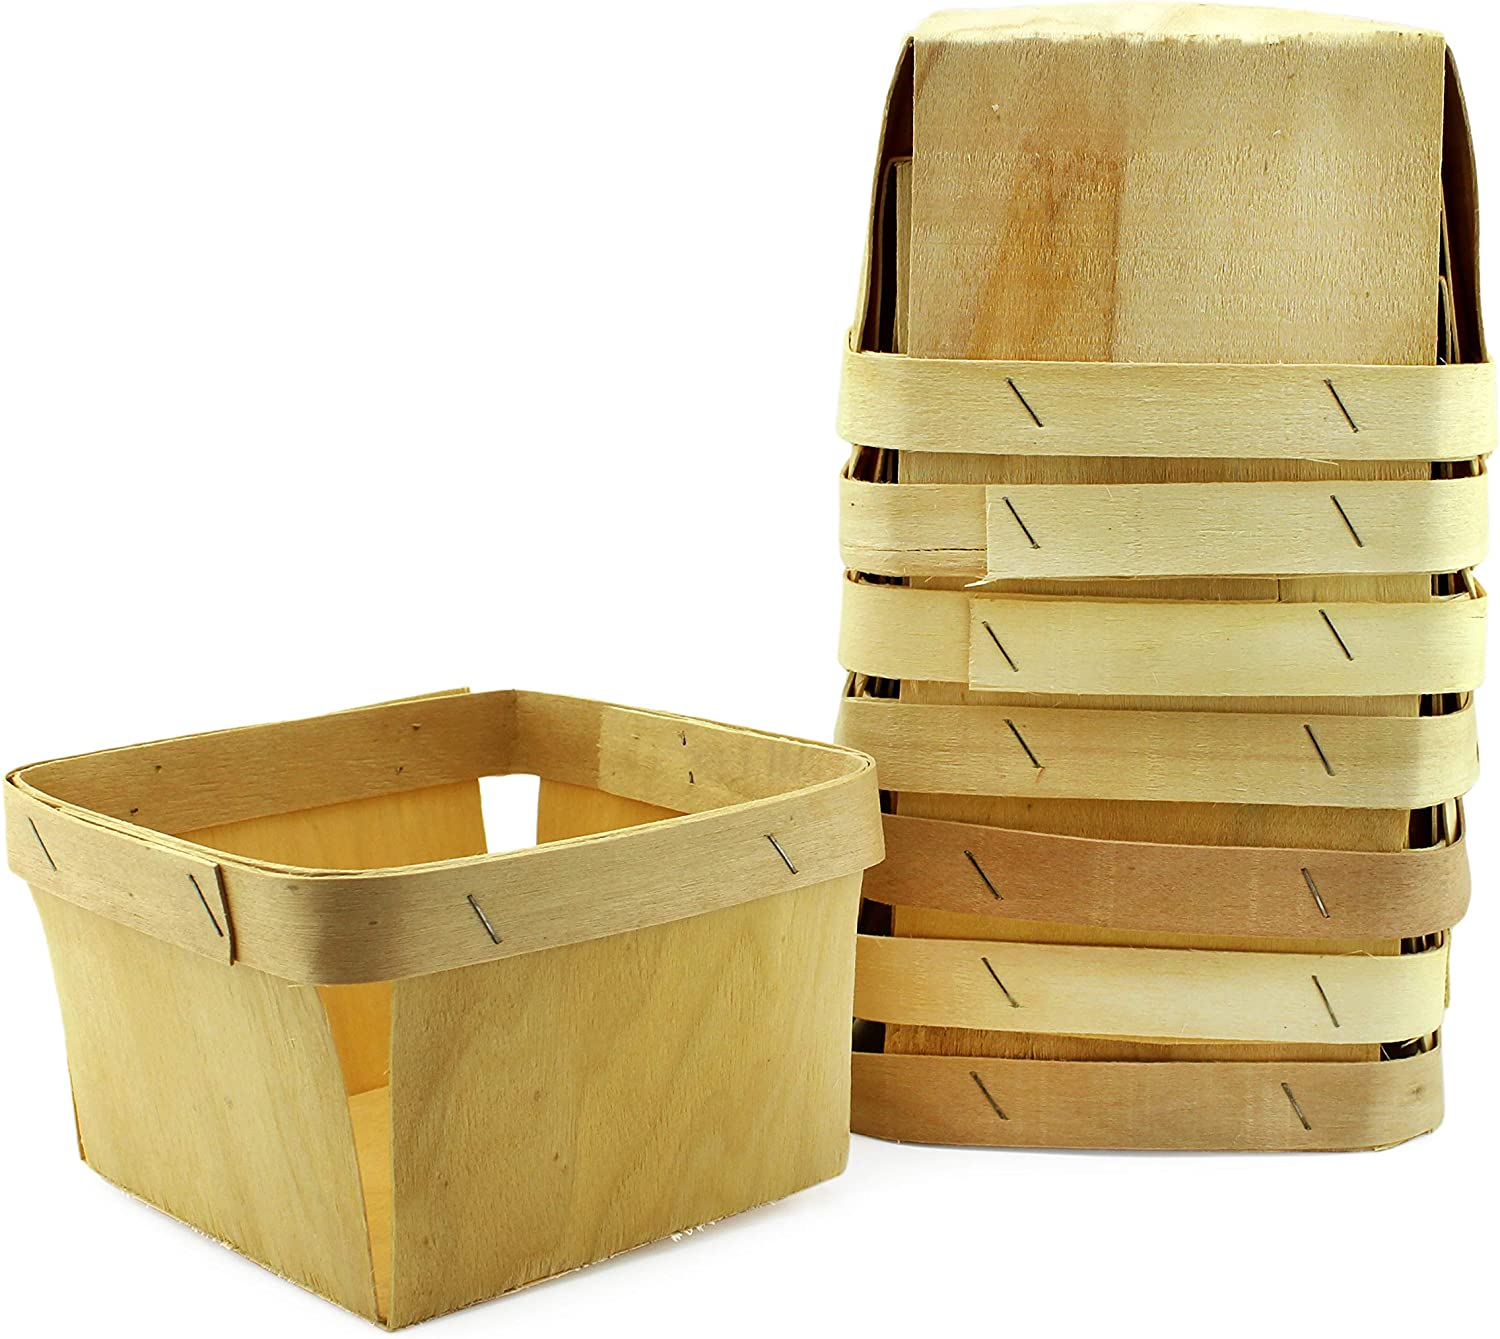 Cornucopia One Quart Wooden Berry Baskets (8-Pack); 5.75-Inch Square Vented Wood Boxes for Fruit Picking or Arts & Crafts